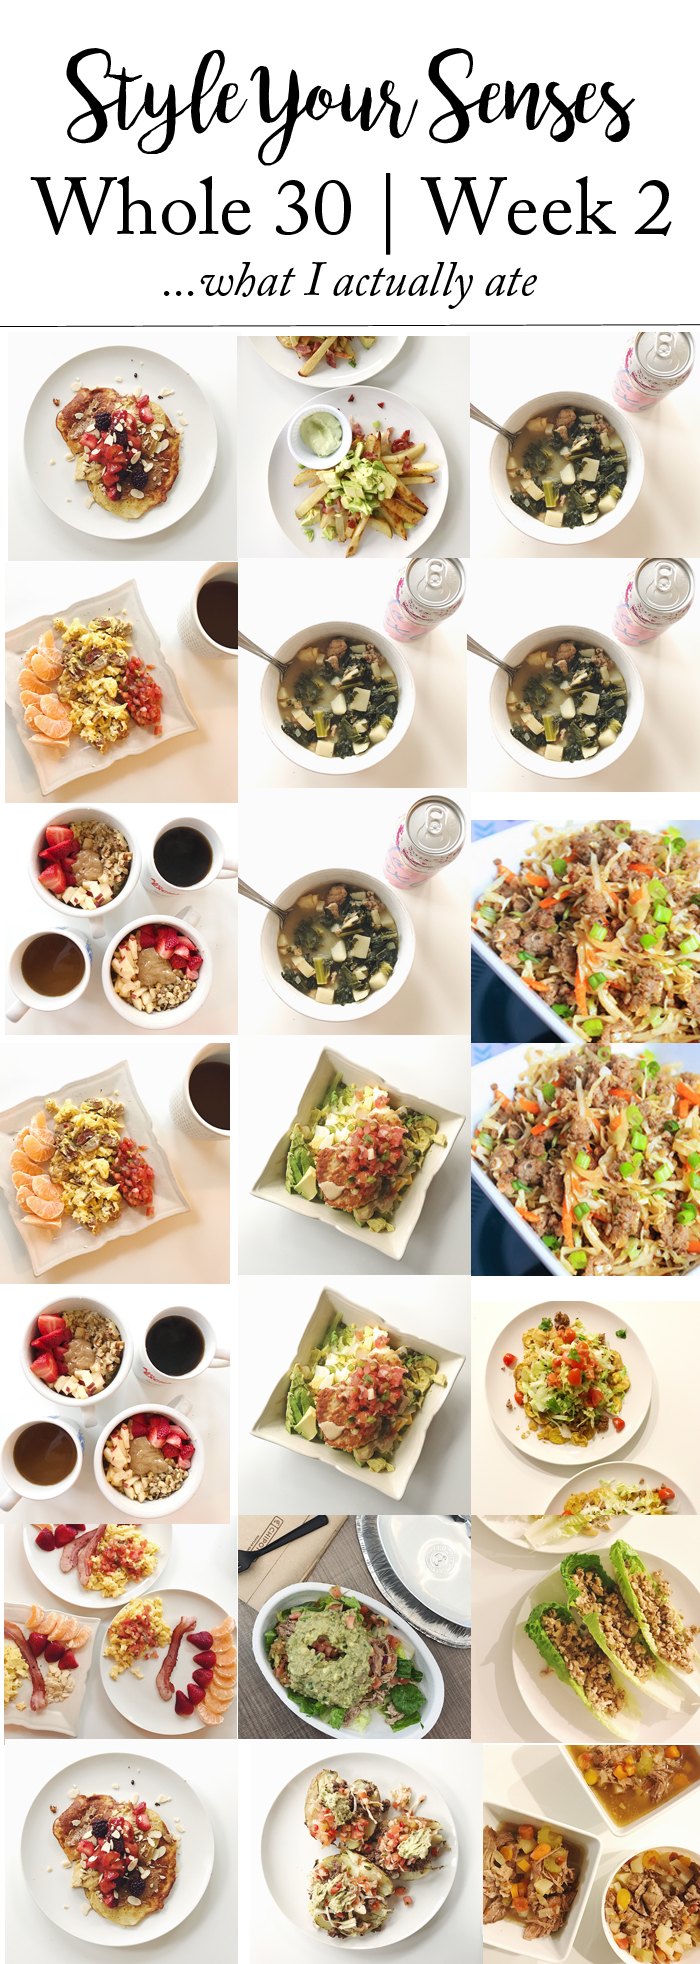 Whole 30 Week 2 Meal Plan and details on what I ate for each meal